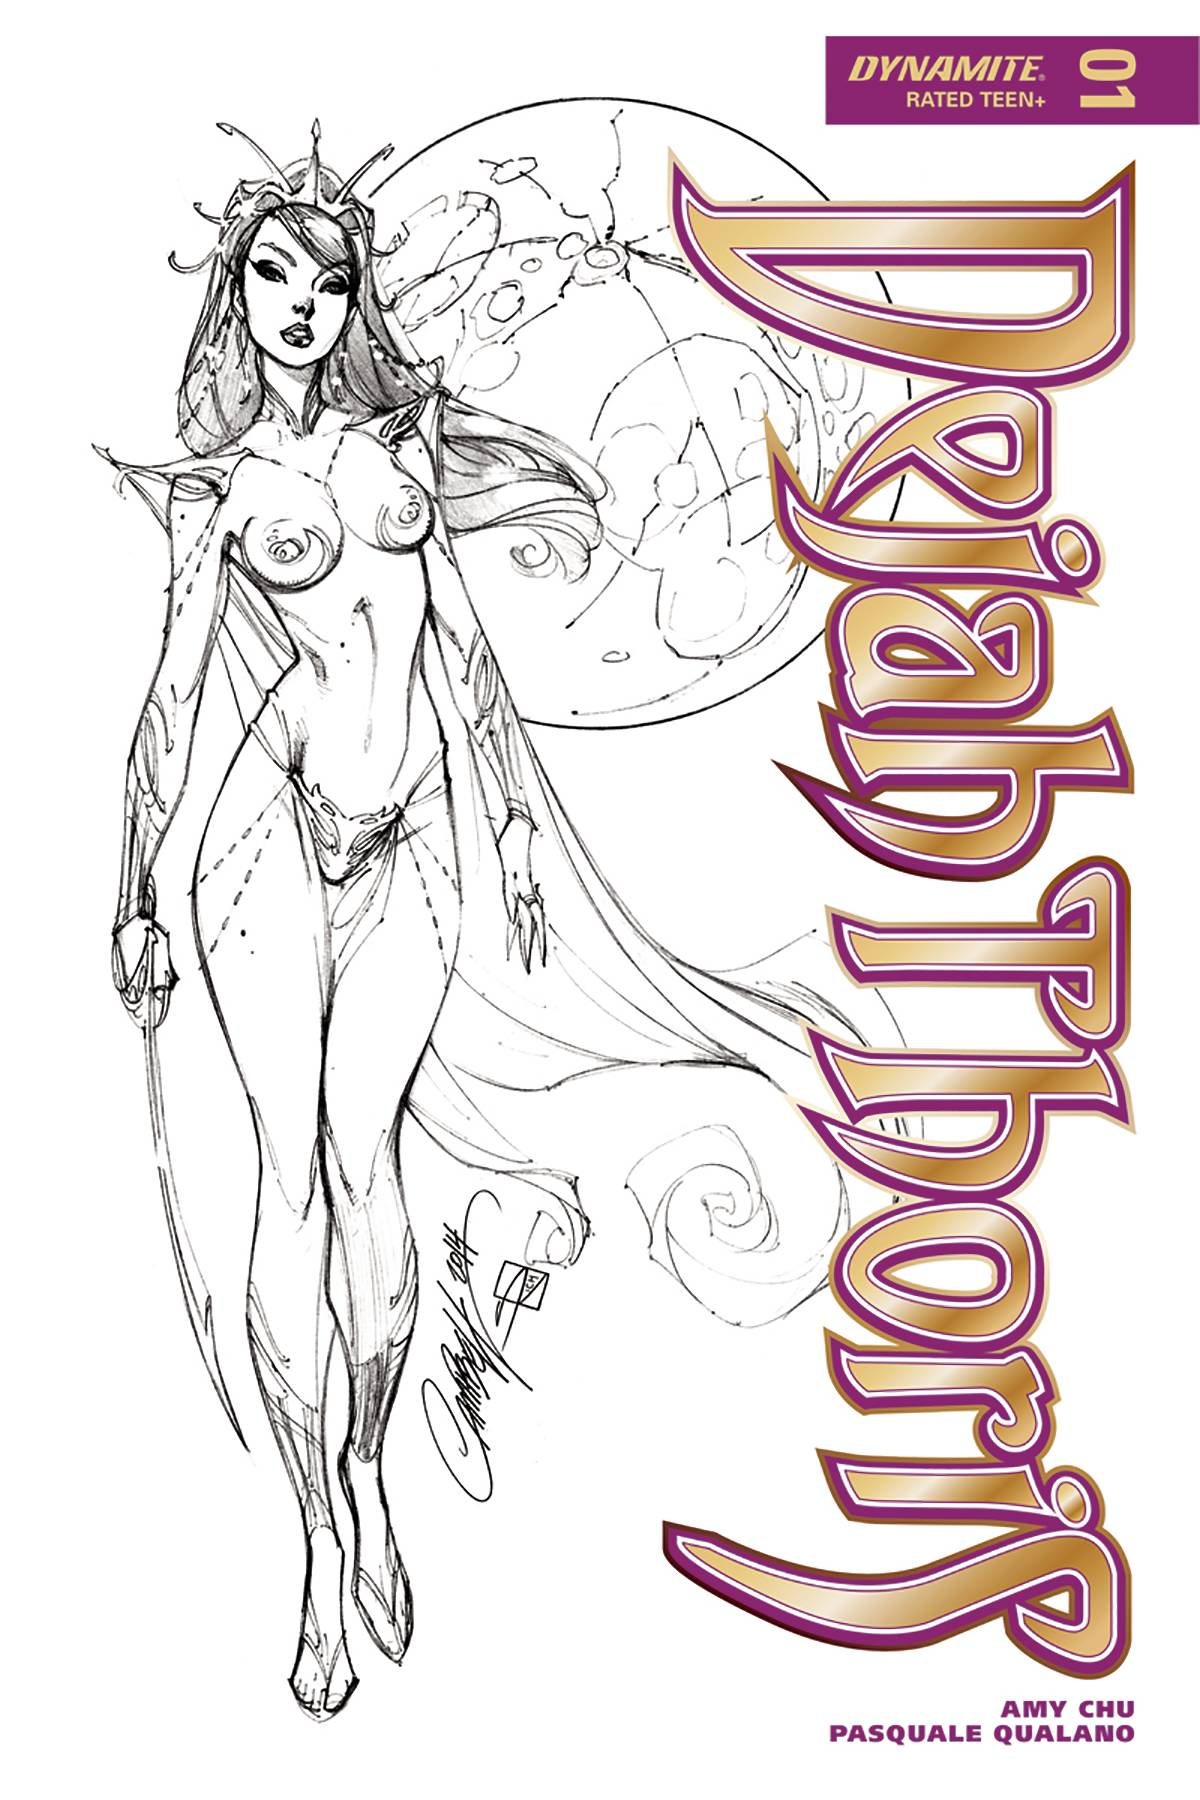 DEJAH THORIS #1 J SCOTT CAMPBELL 1:50 B&W VARIANT (02/07/2018)